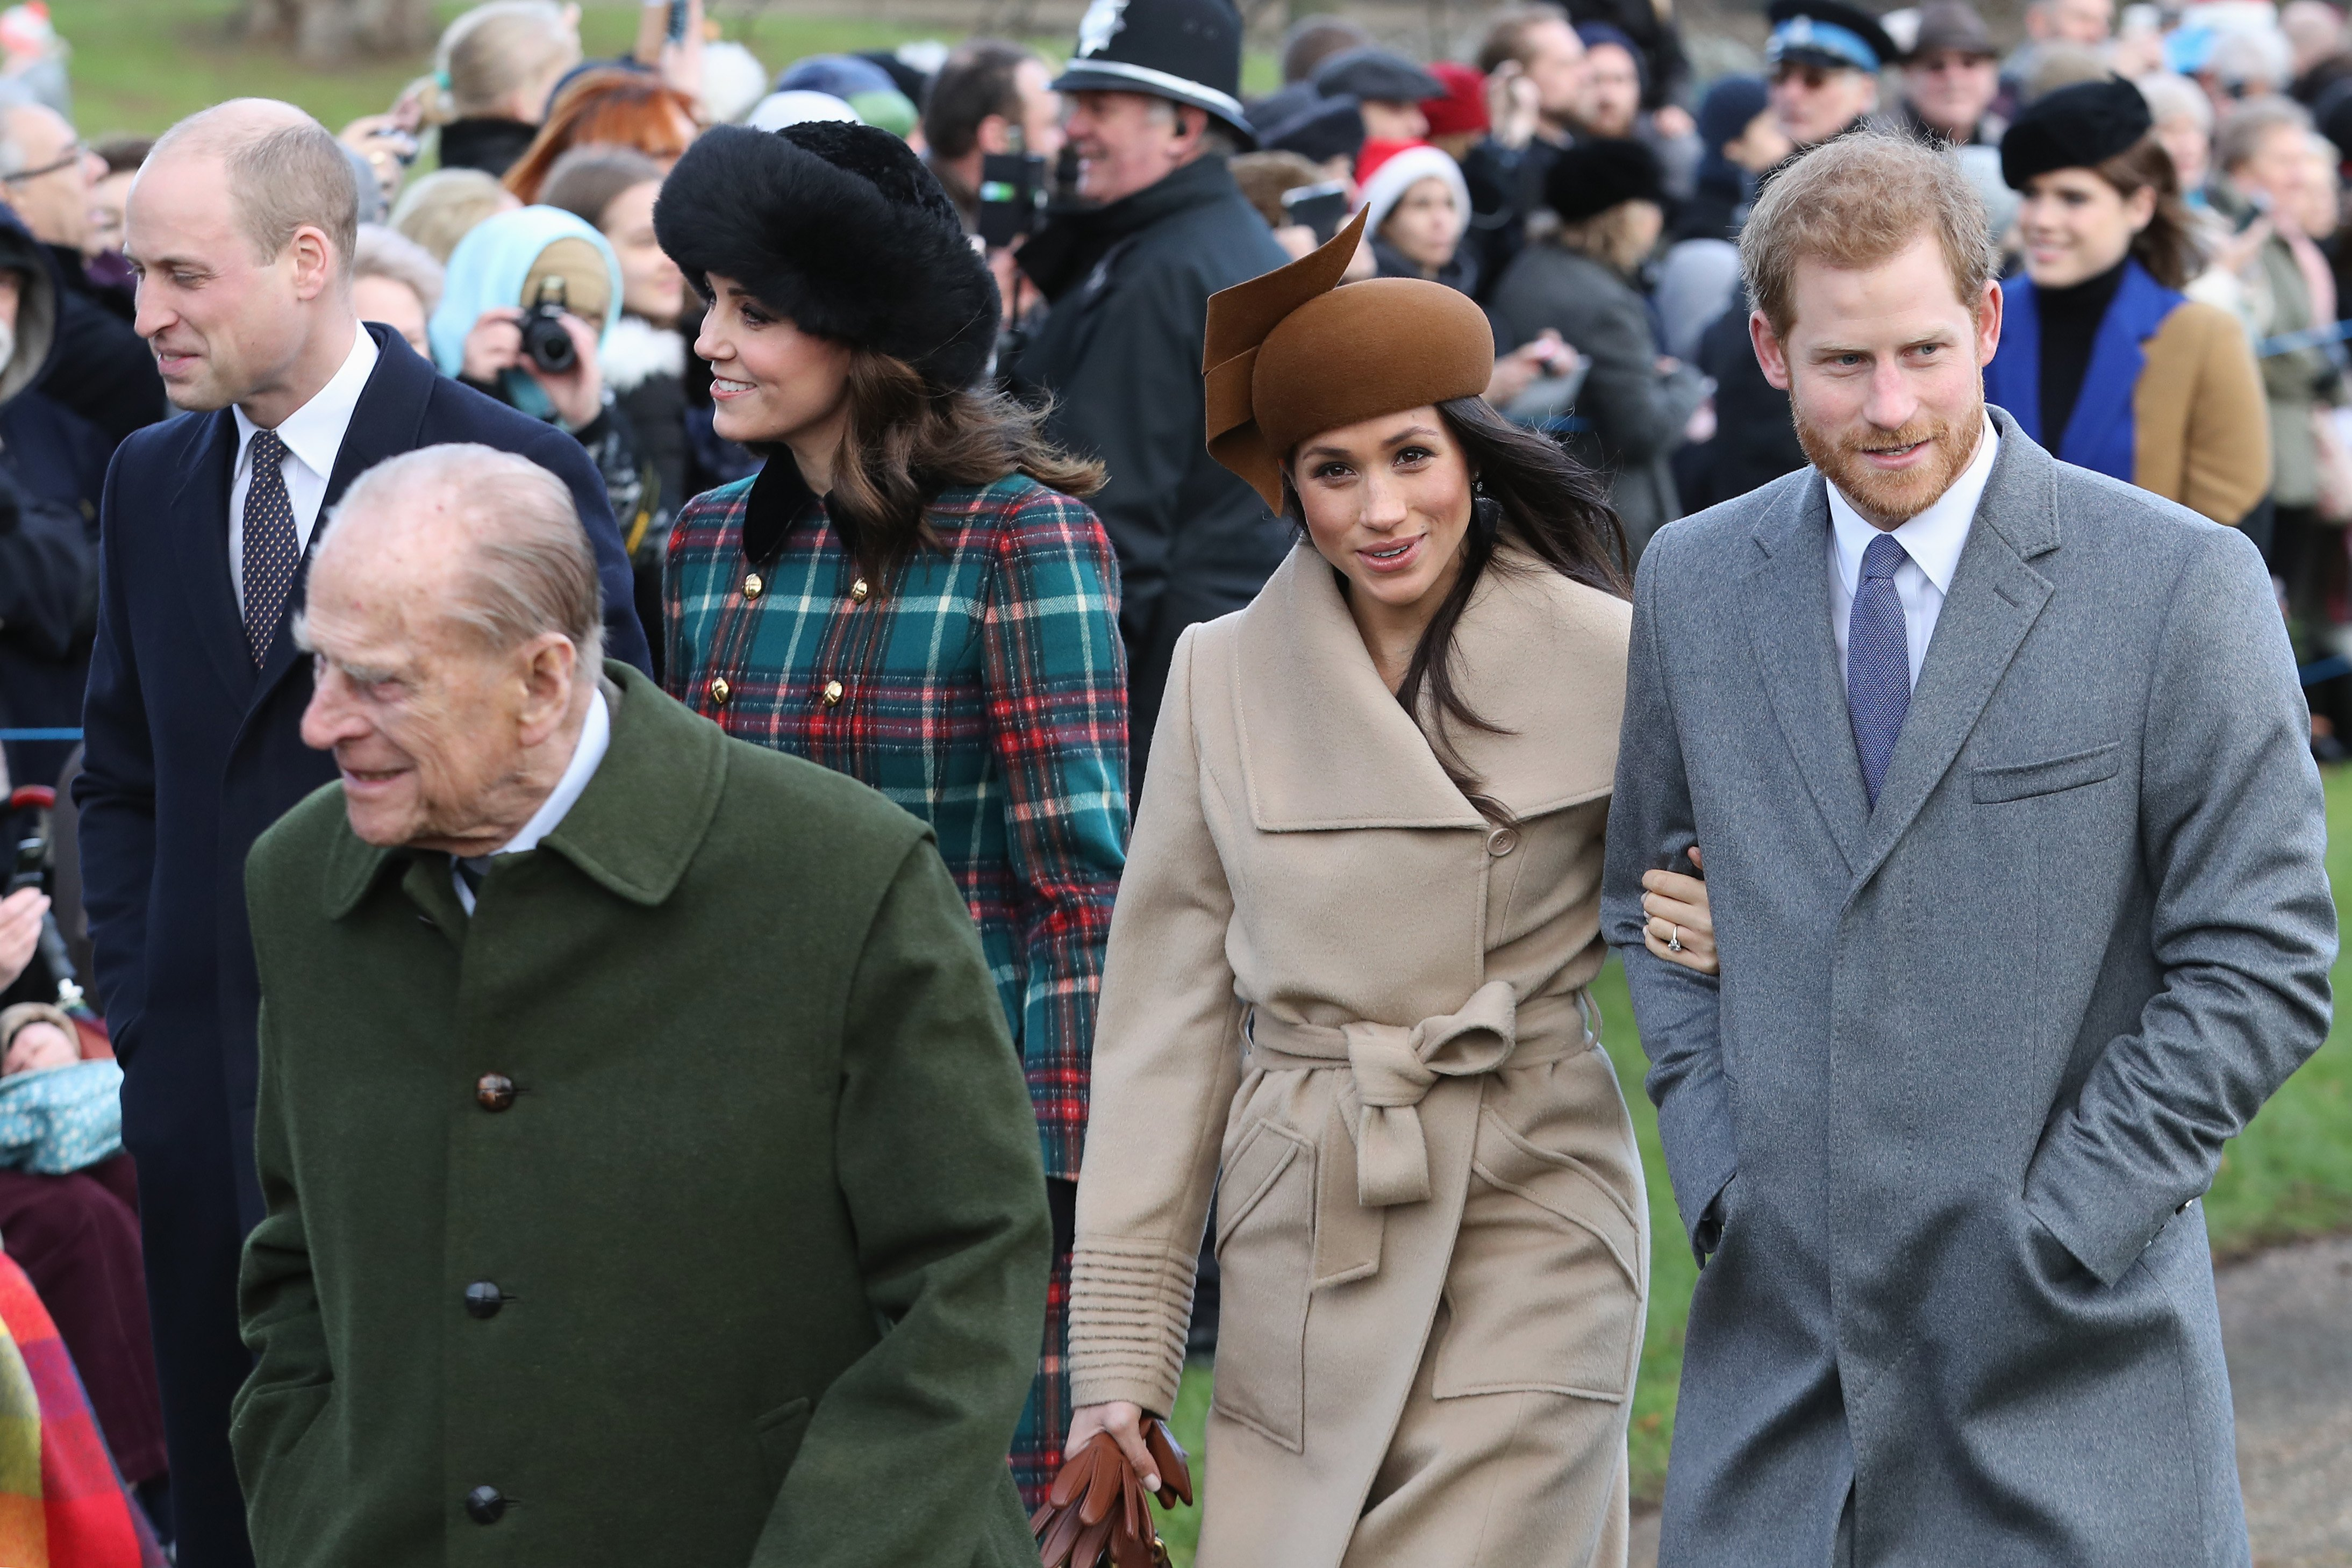 Prince William, Prince Philip, Kate Middleton, Meghan Markle and Prince Harry attend Christmas Day church service on December 25, 2017 in King's Lynn, England | Photo: Getty Images